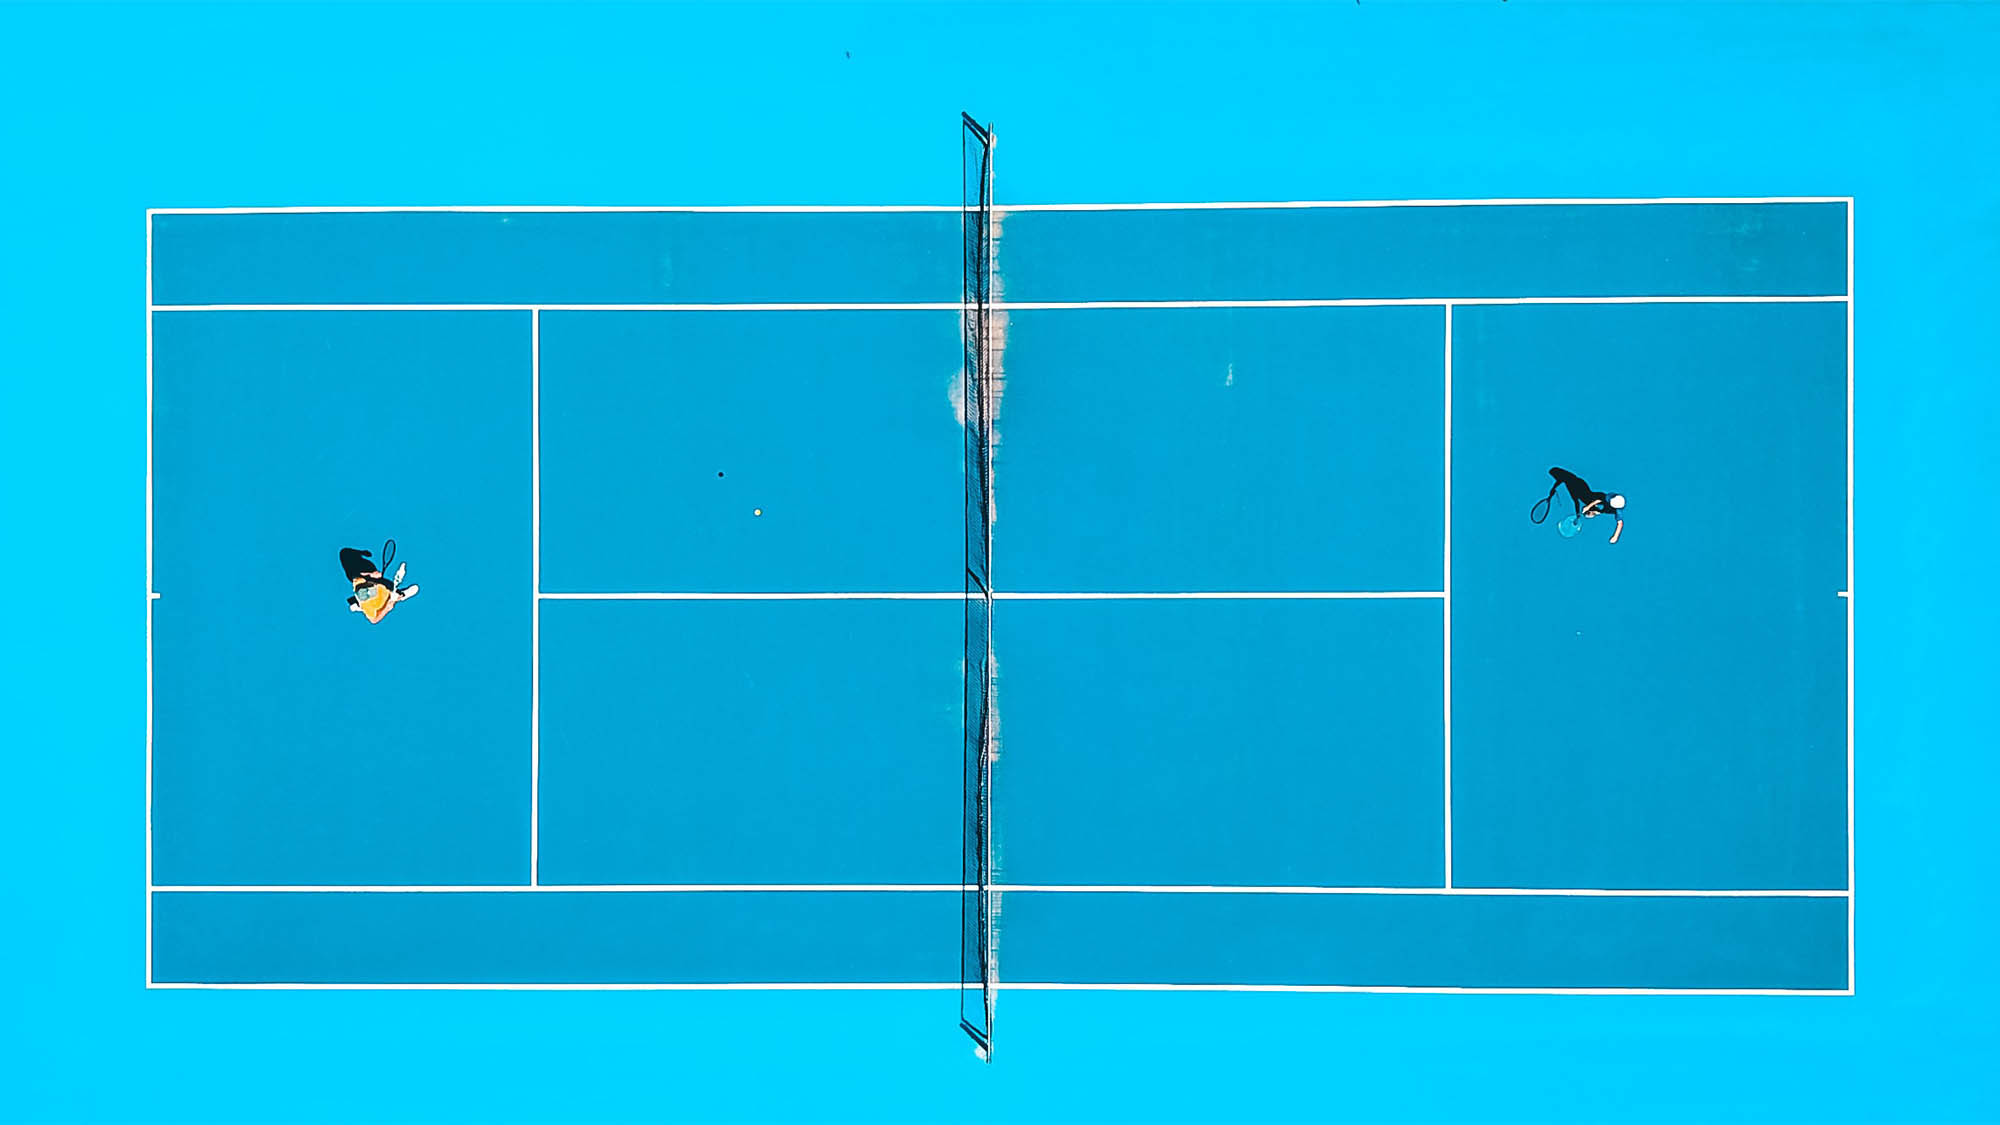 Aerial shot of two people playing tennis on teal court